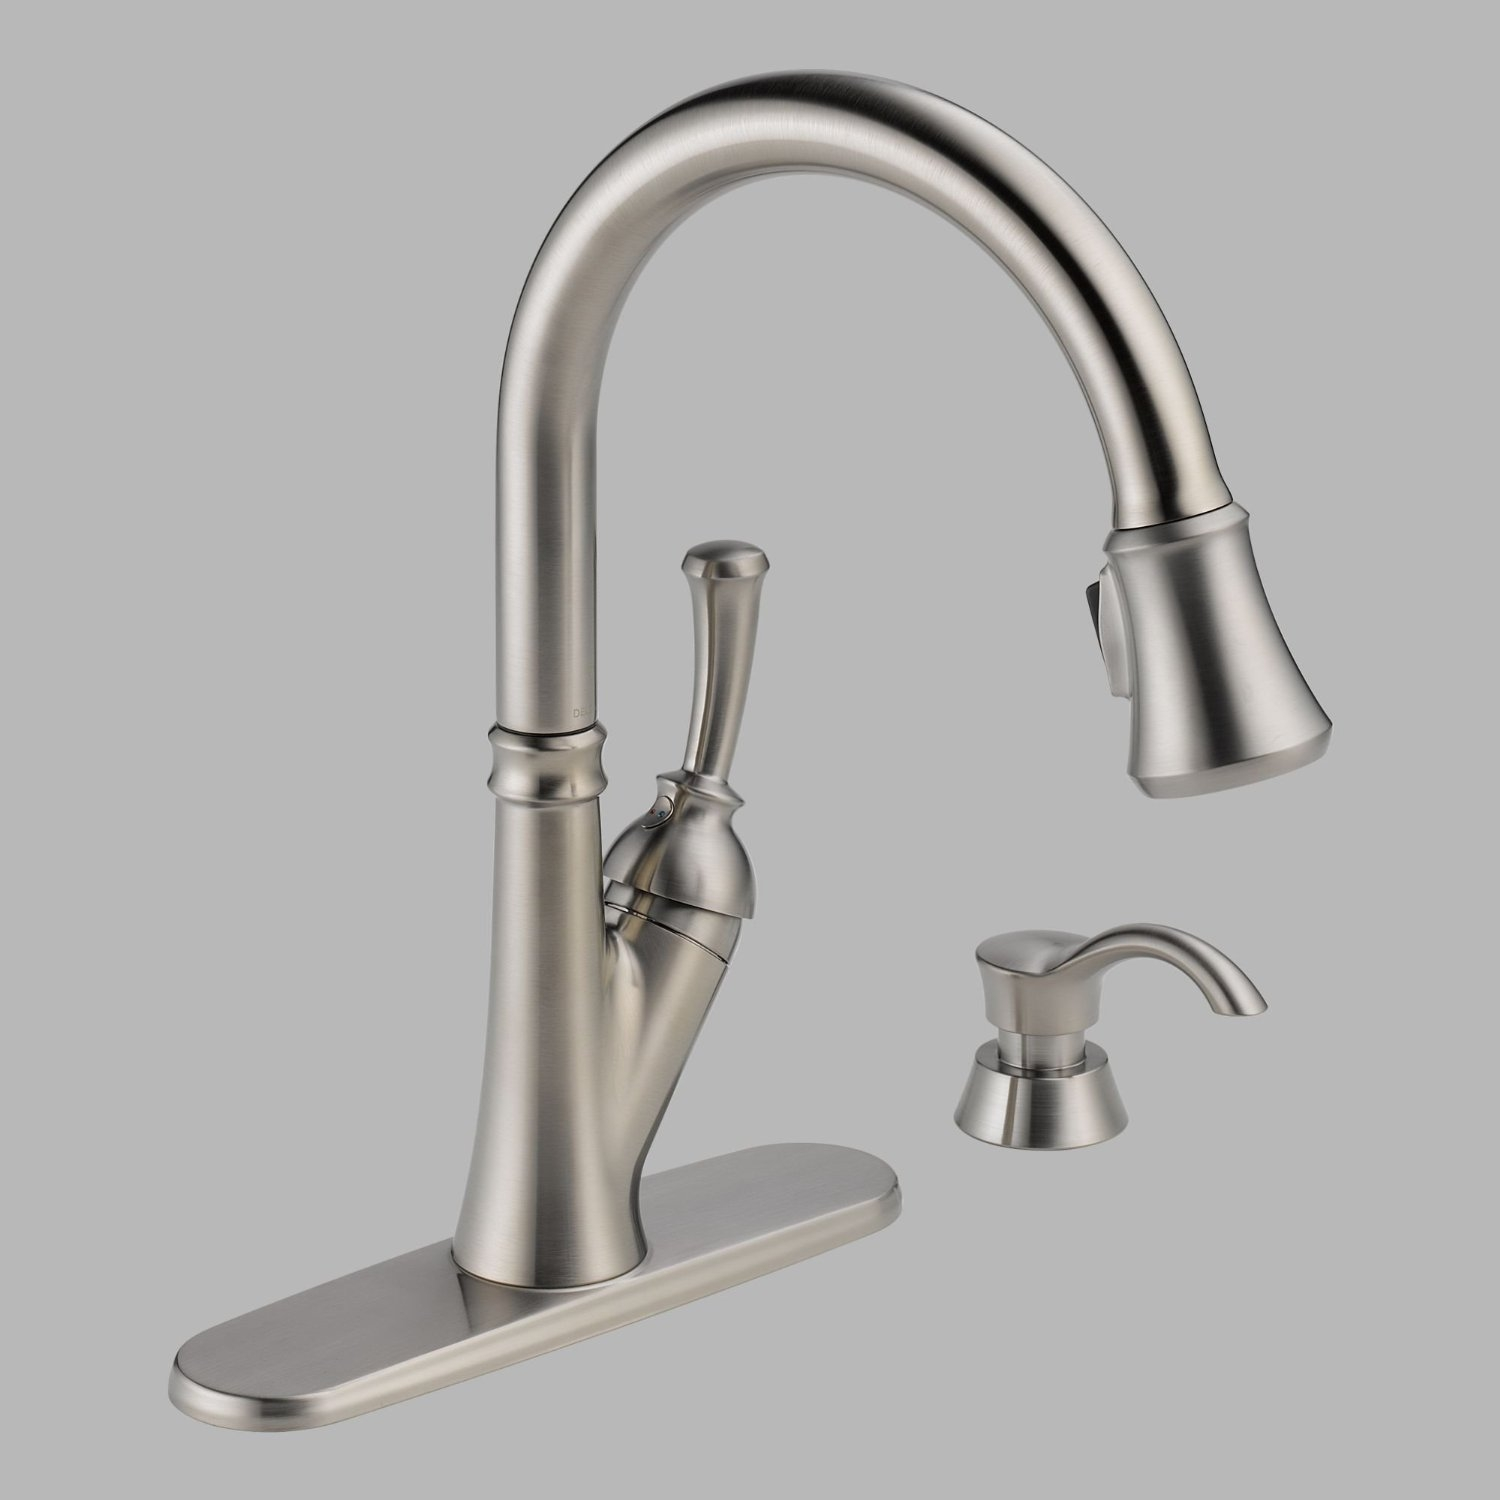 Ideas, delta tall kitchen faucets delta tall kitchen faucets pull down faucet archives best sinks and faucets 1500 x 1500  .